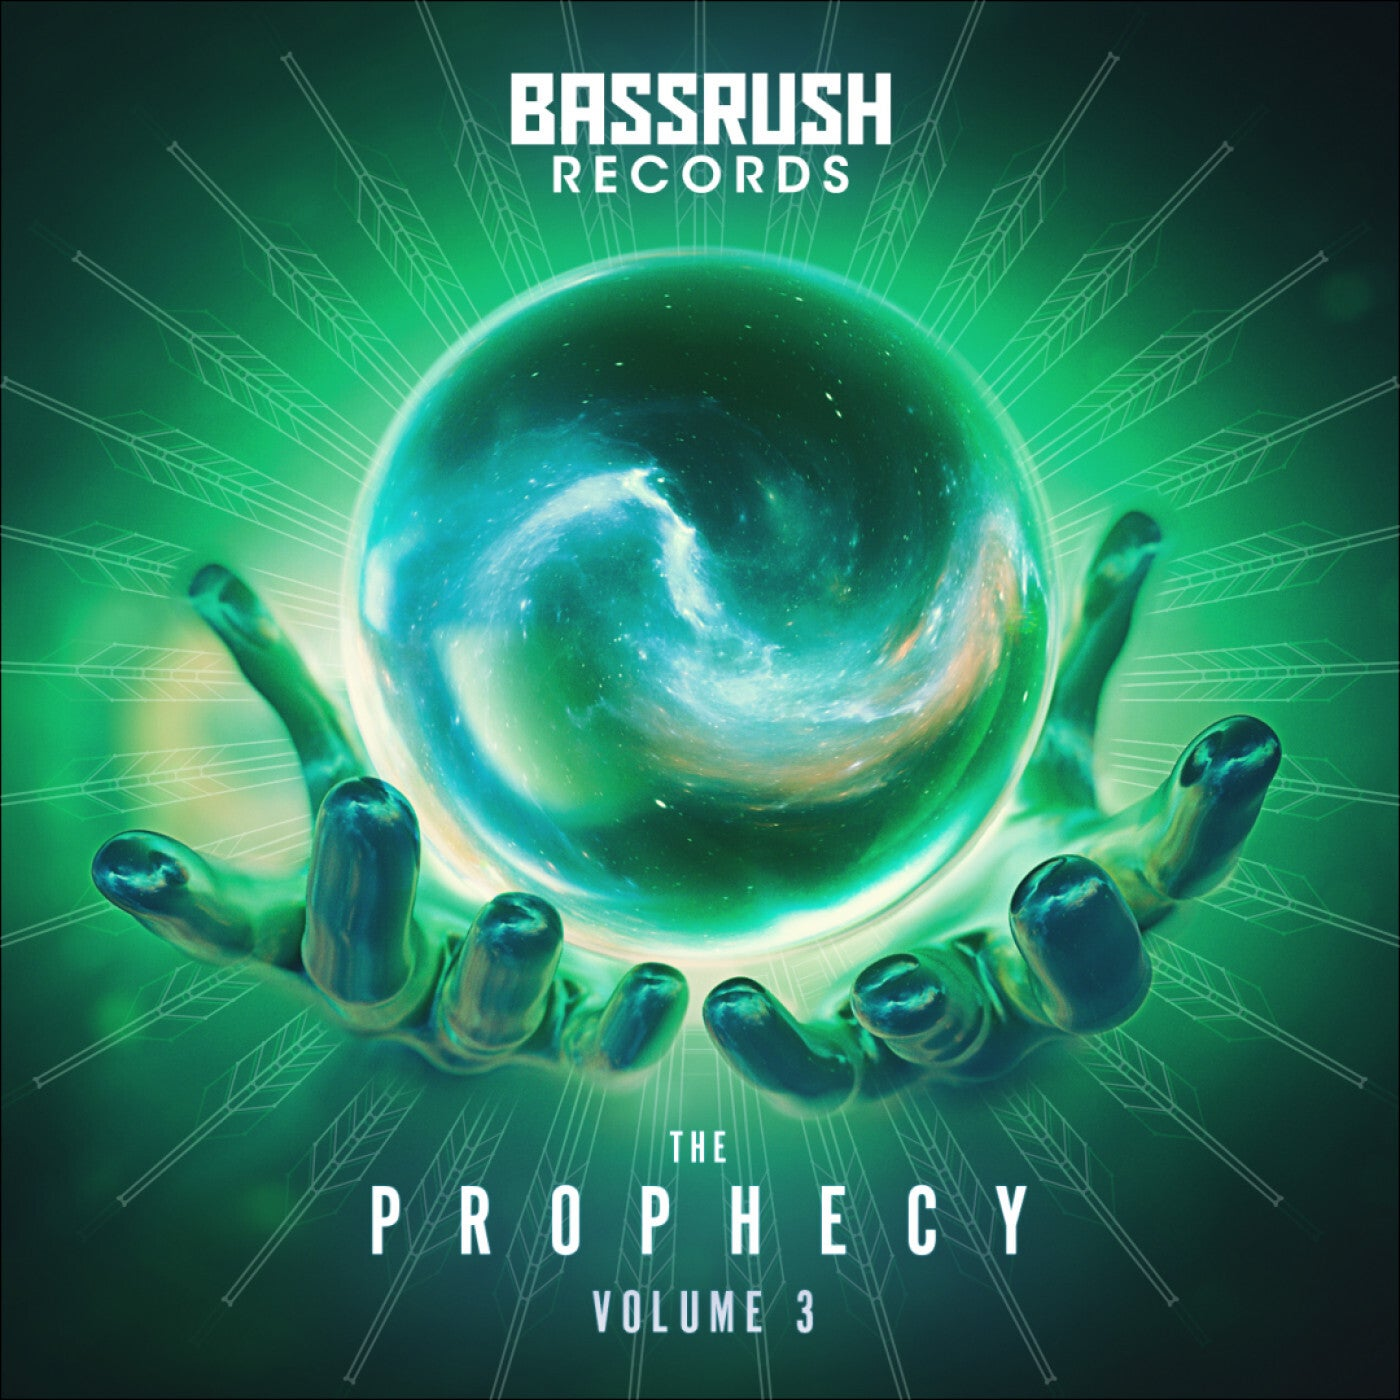 The Prophecy: Volume 3